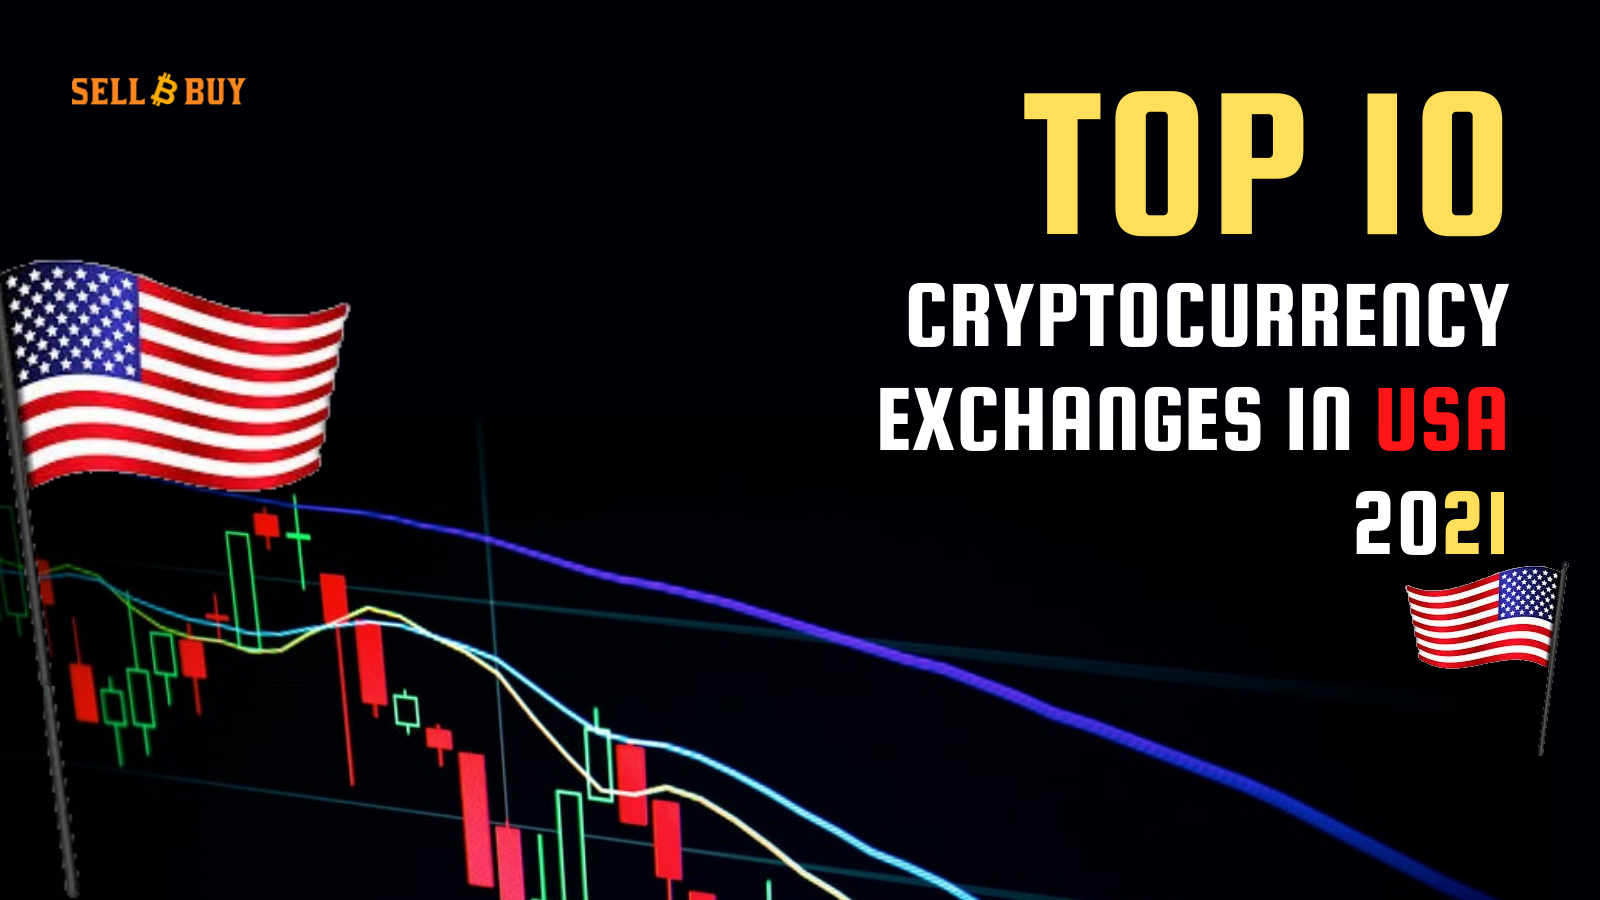 Top Cryptocurrency Exchanges In USA 2021